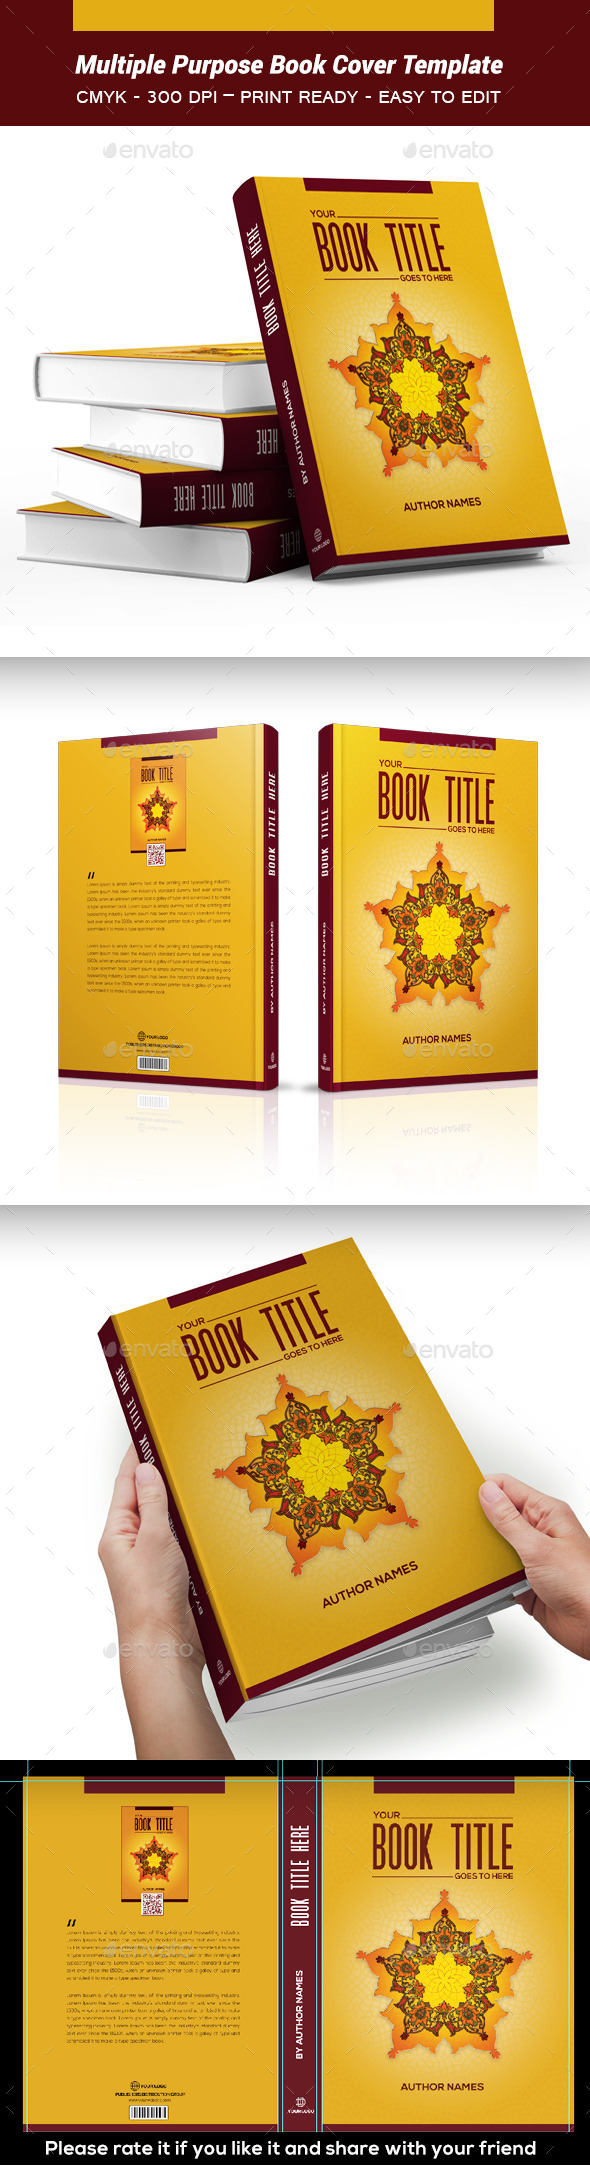 GraphicRiver Multiple Purpose Book Cover Template 03 10546673